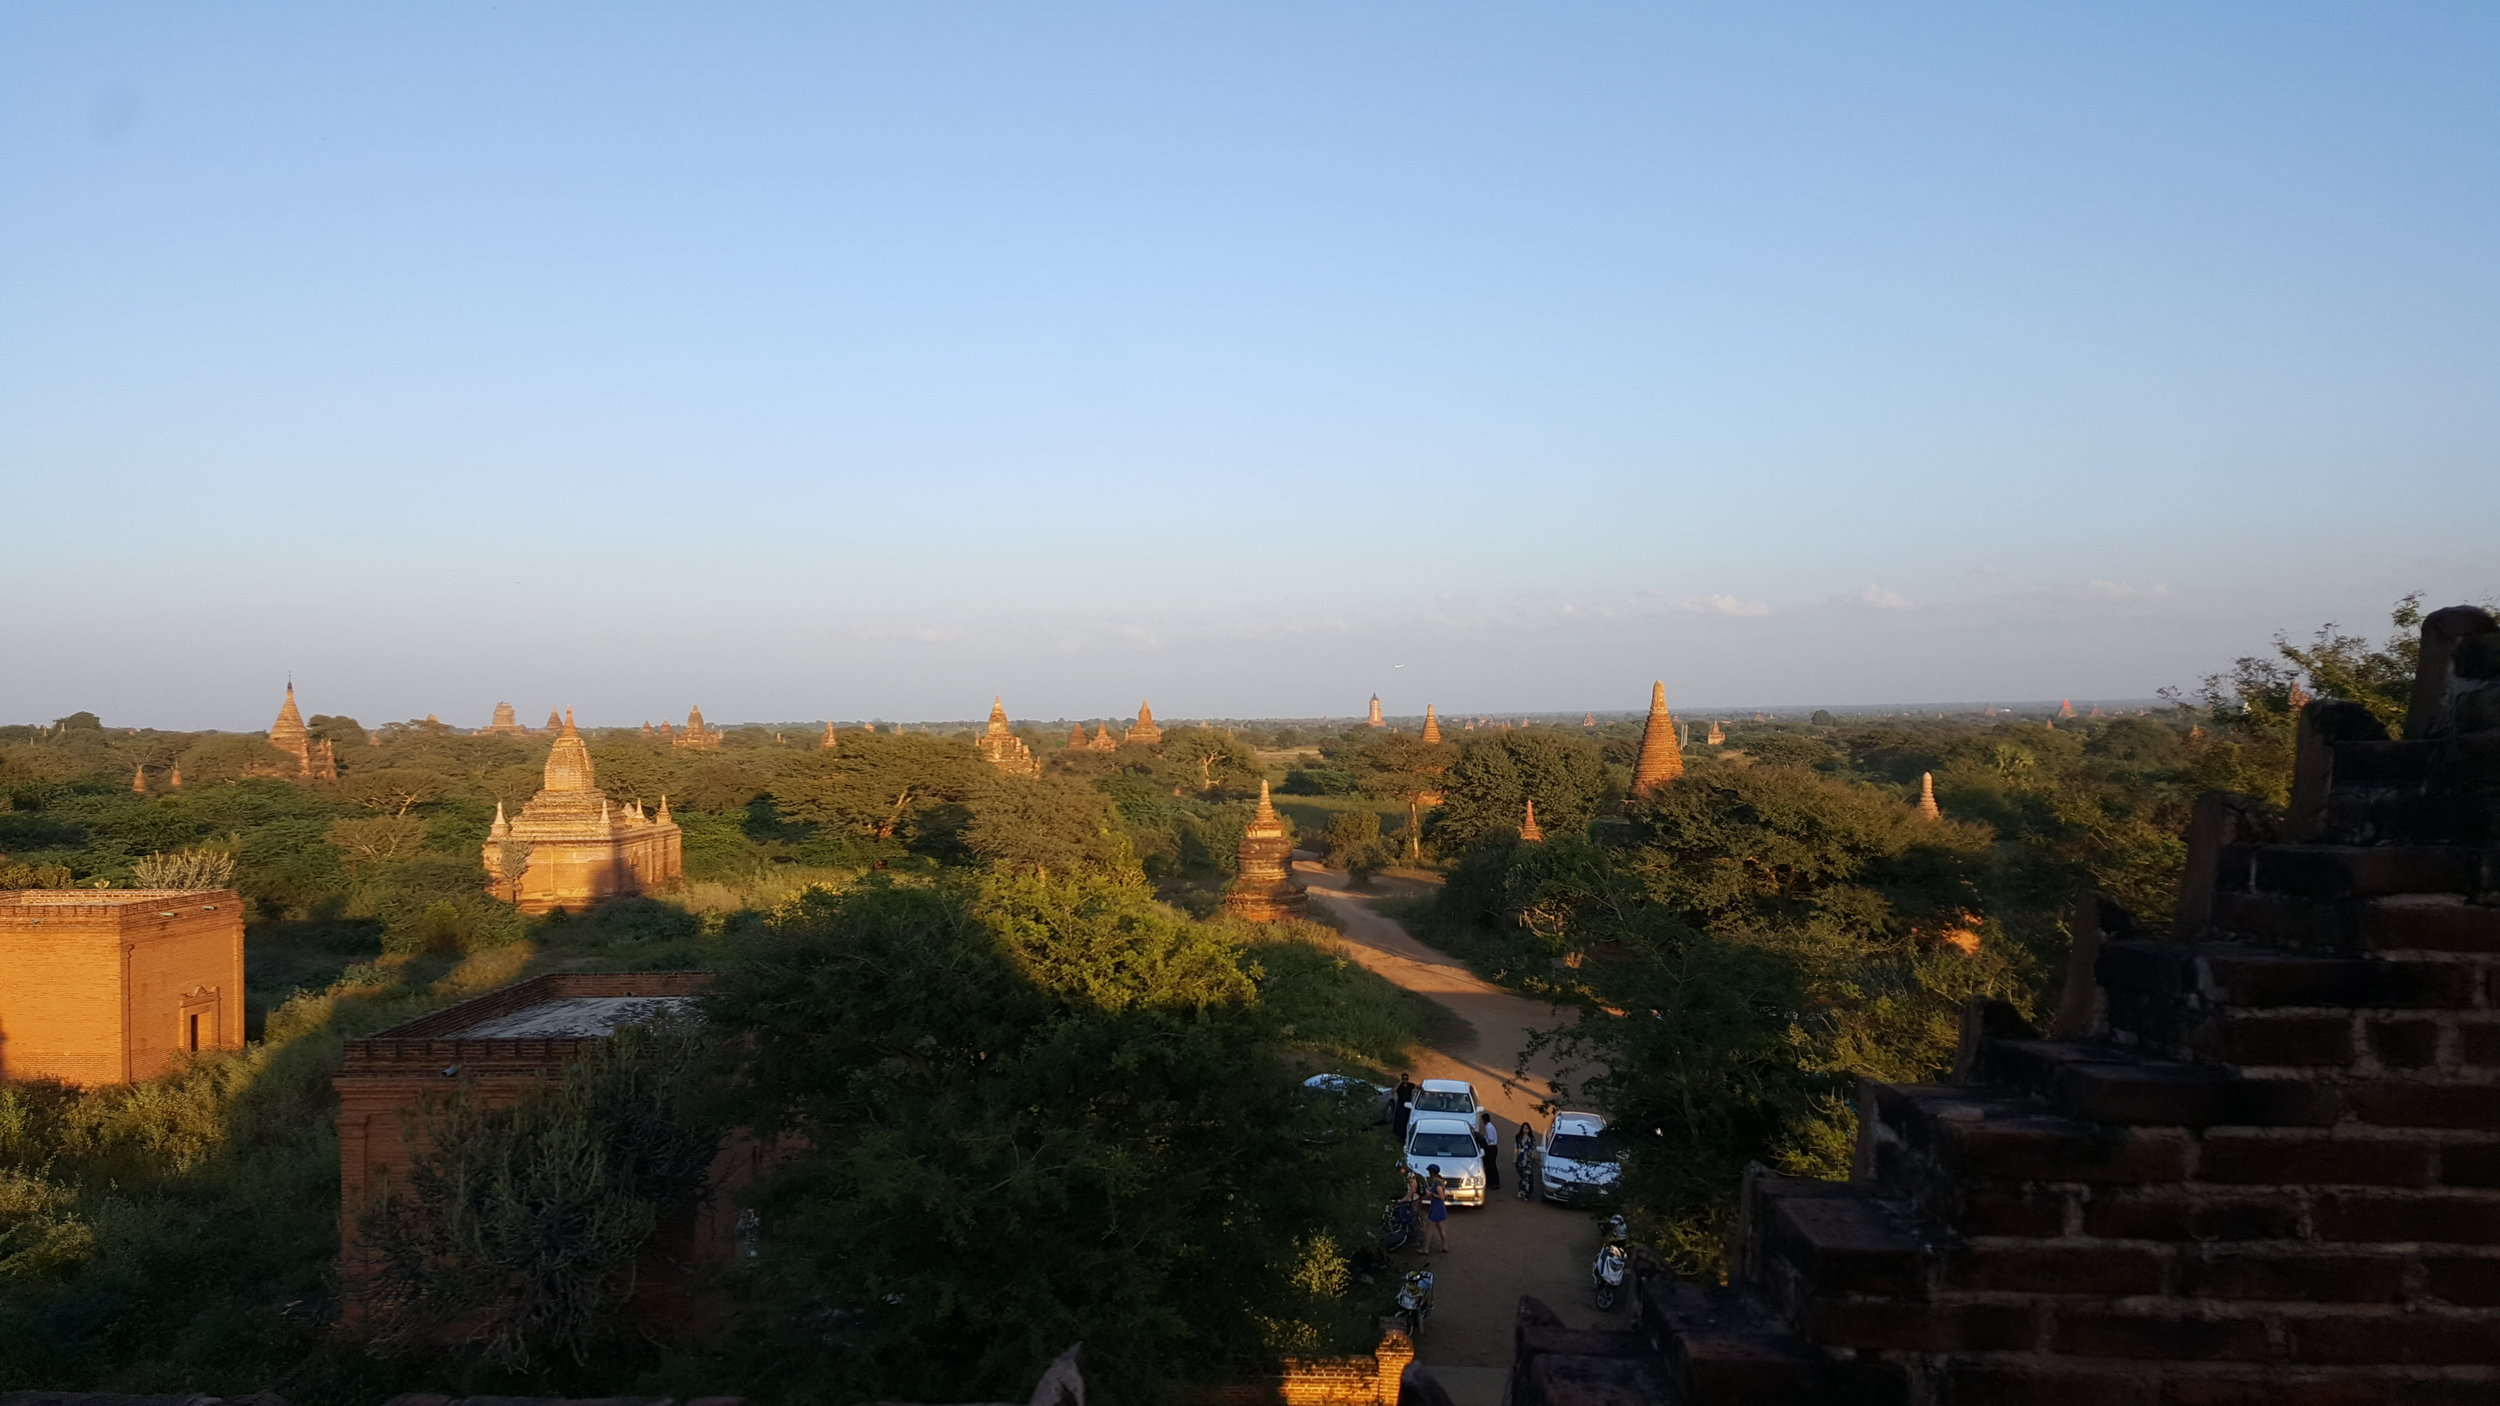 over bagan myanmar www.onemorestamp.com